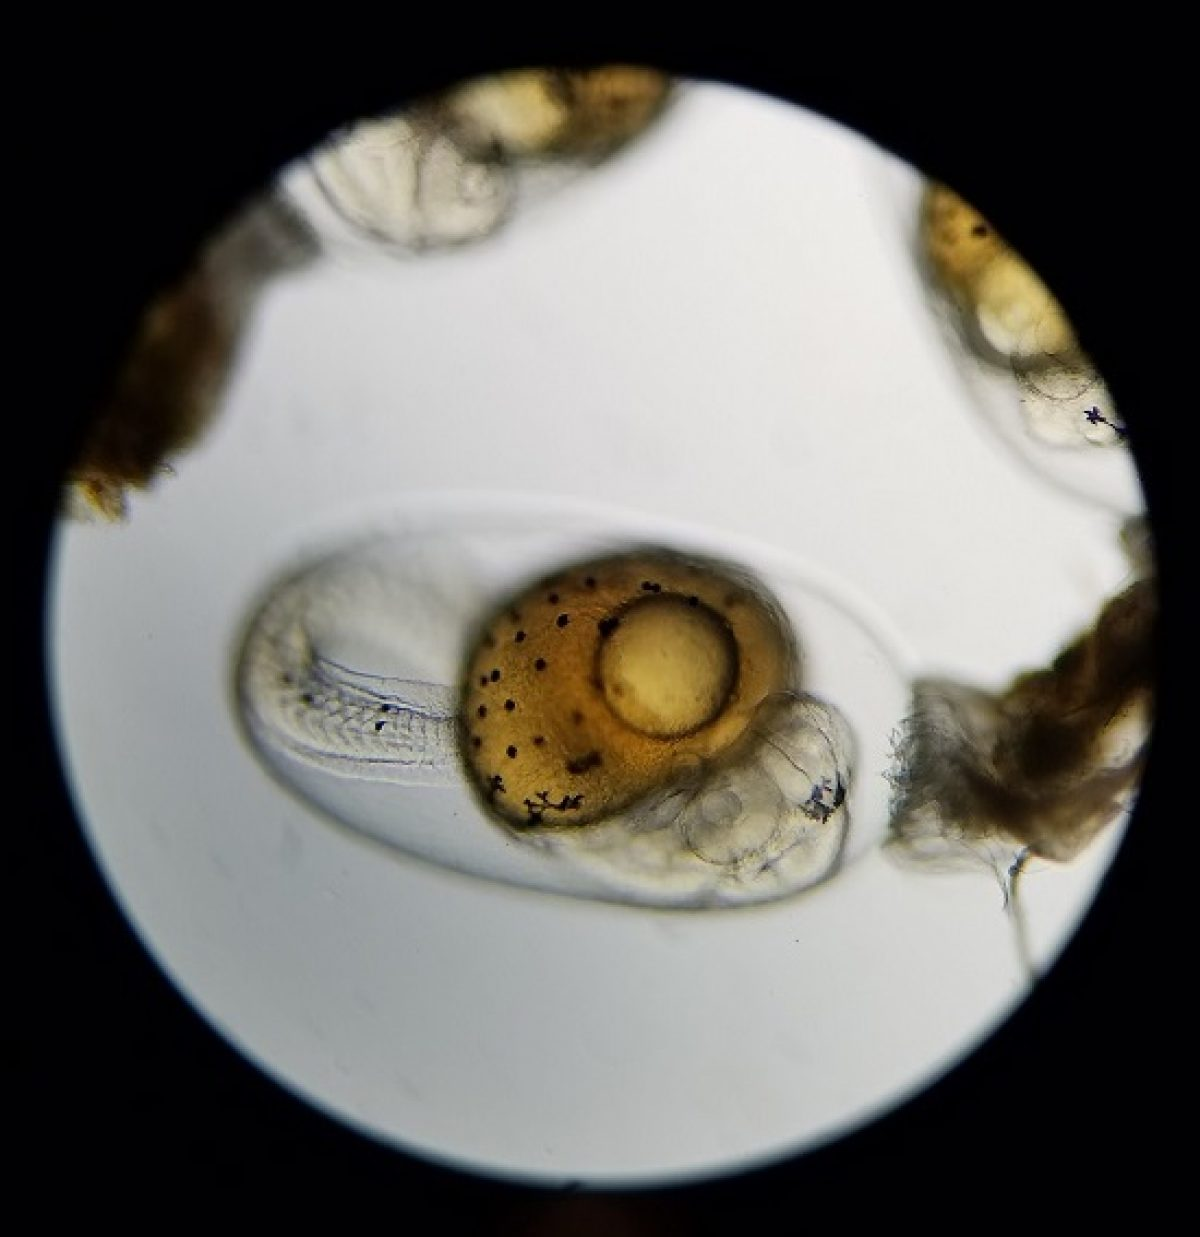 A fish egg being viewed under a microscope